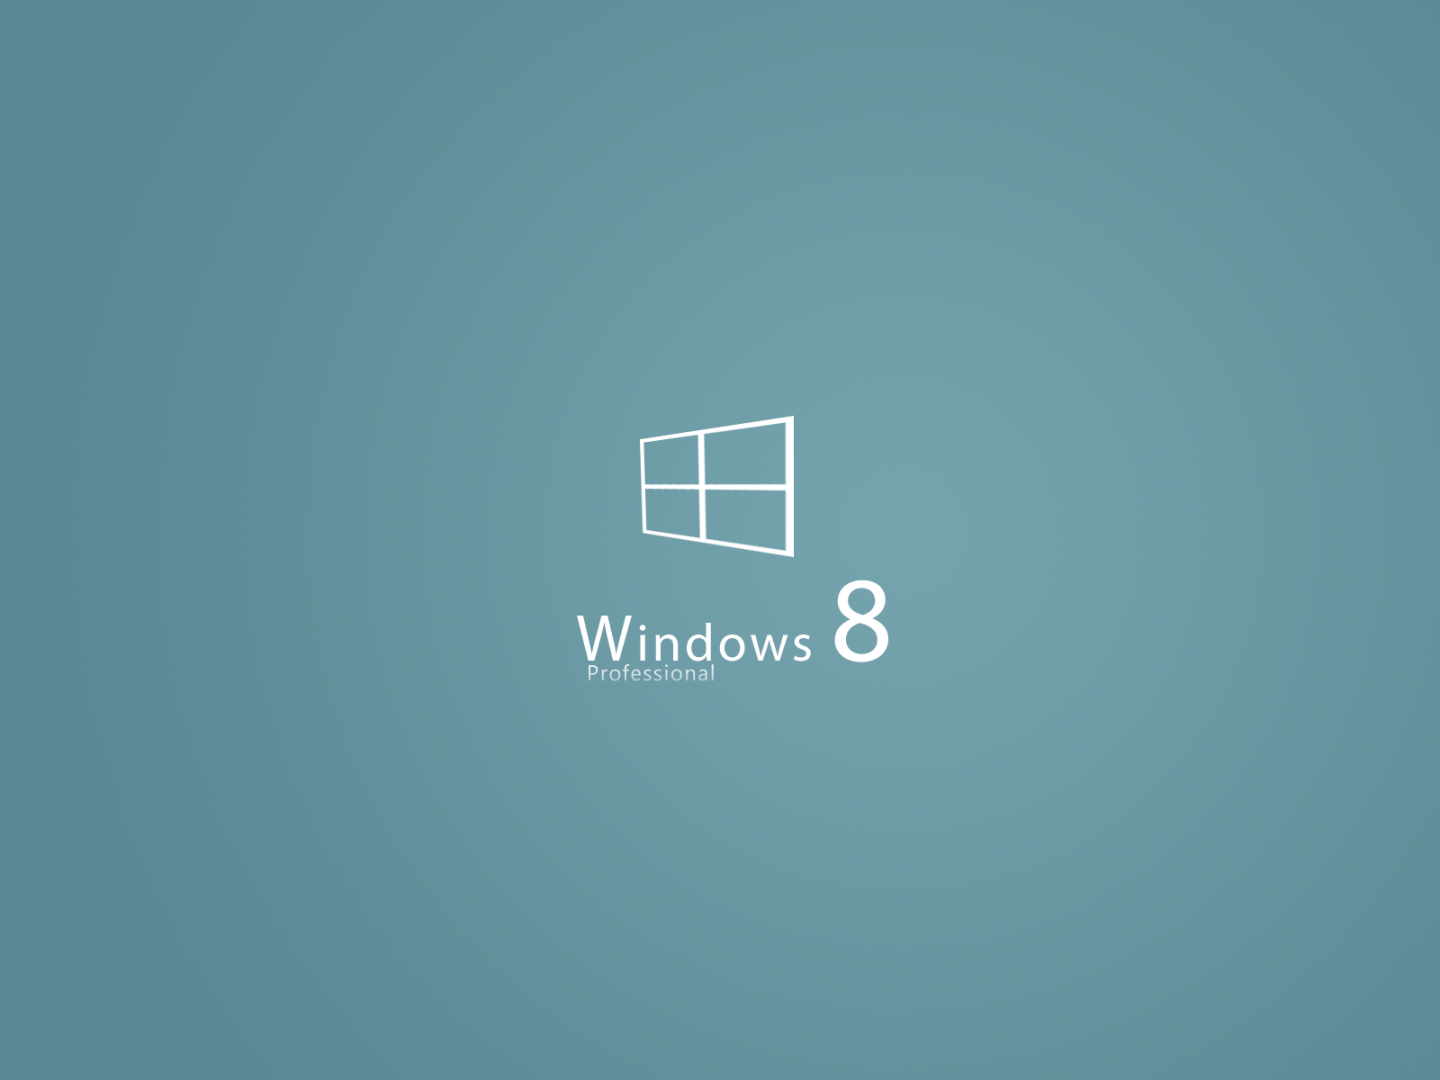 windows_8_concept_new_logo_wallpaper__2_by_danielskrzypon-d4taa4g.png